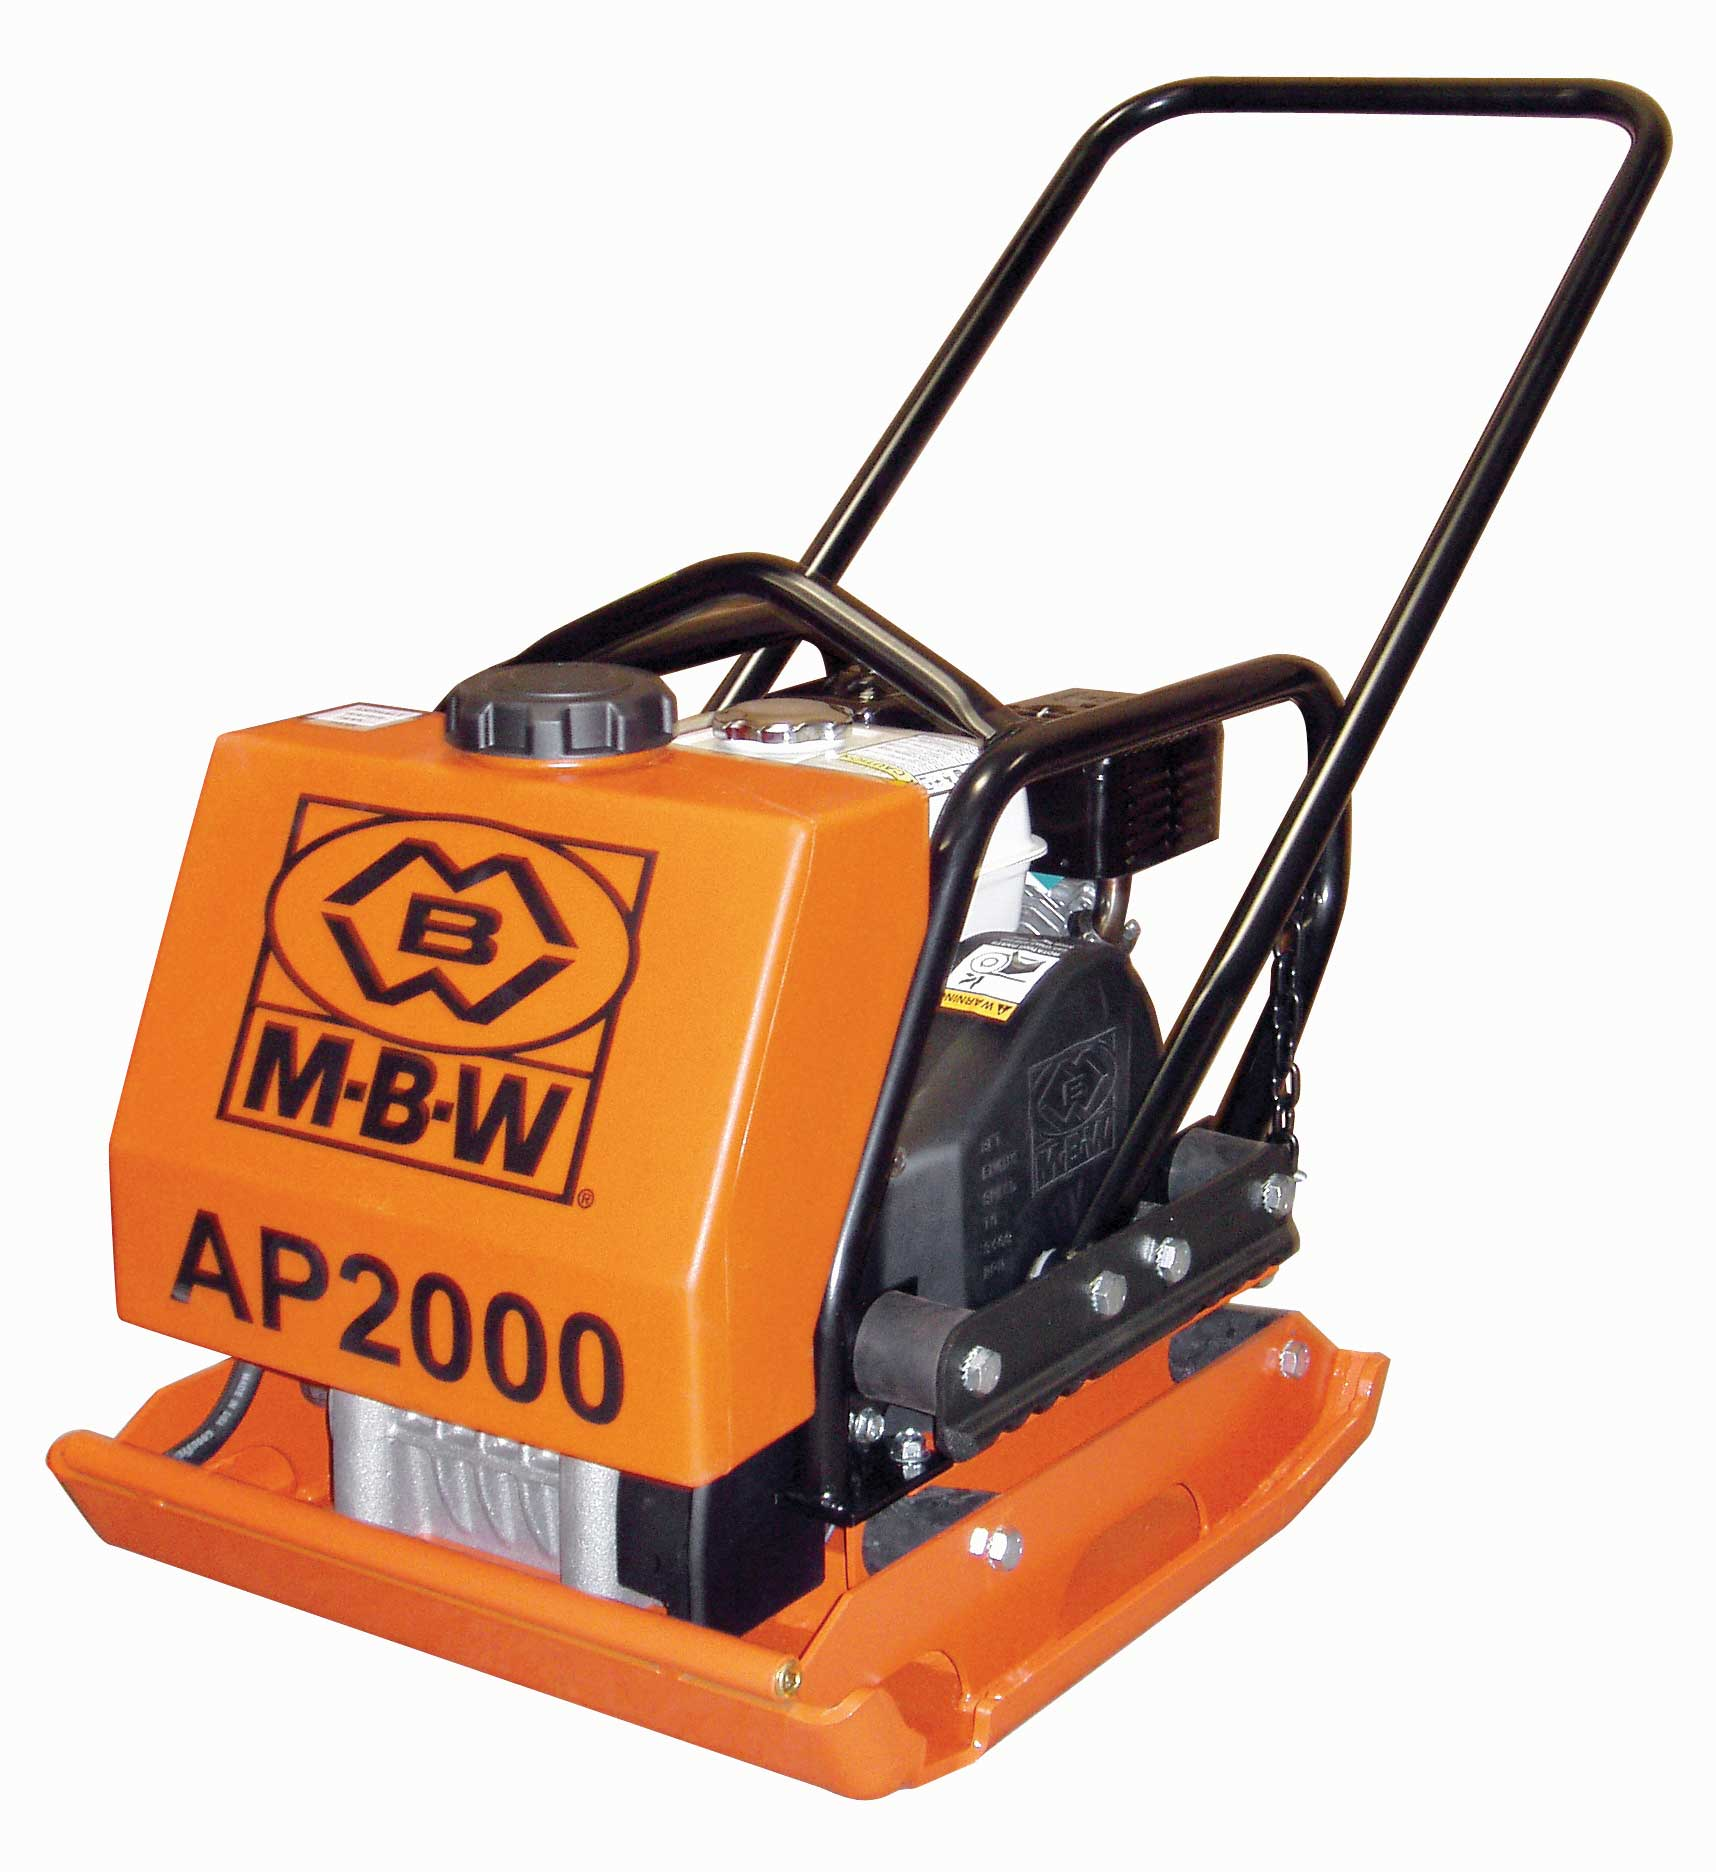 ADH Hitch & Rental - Concrete Equipment